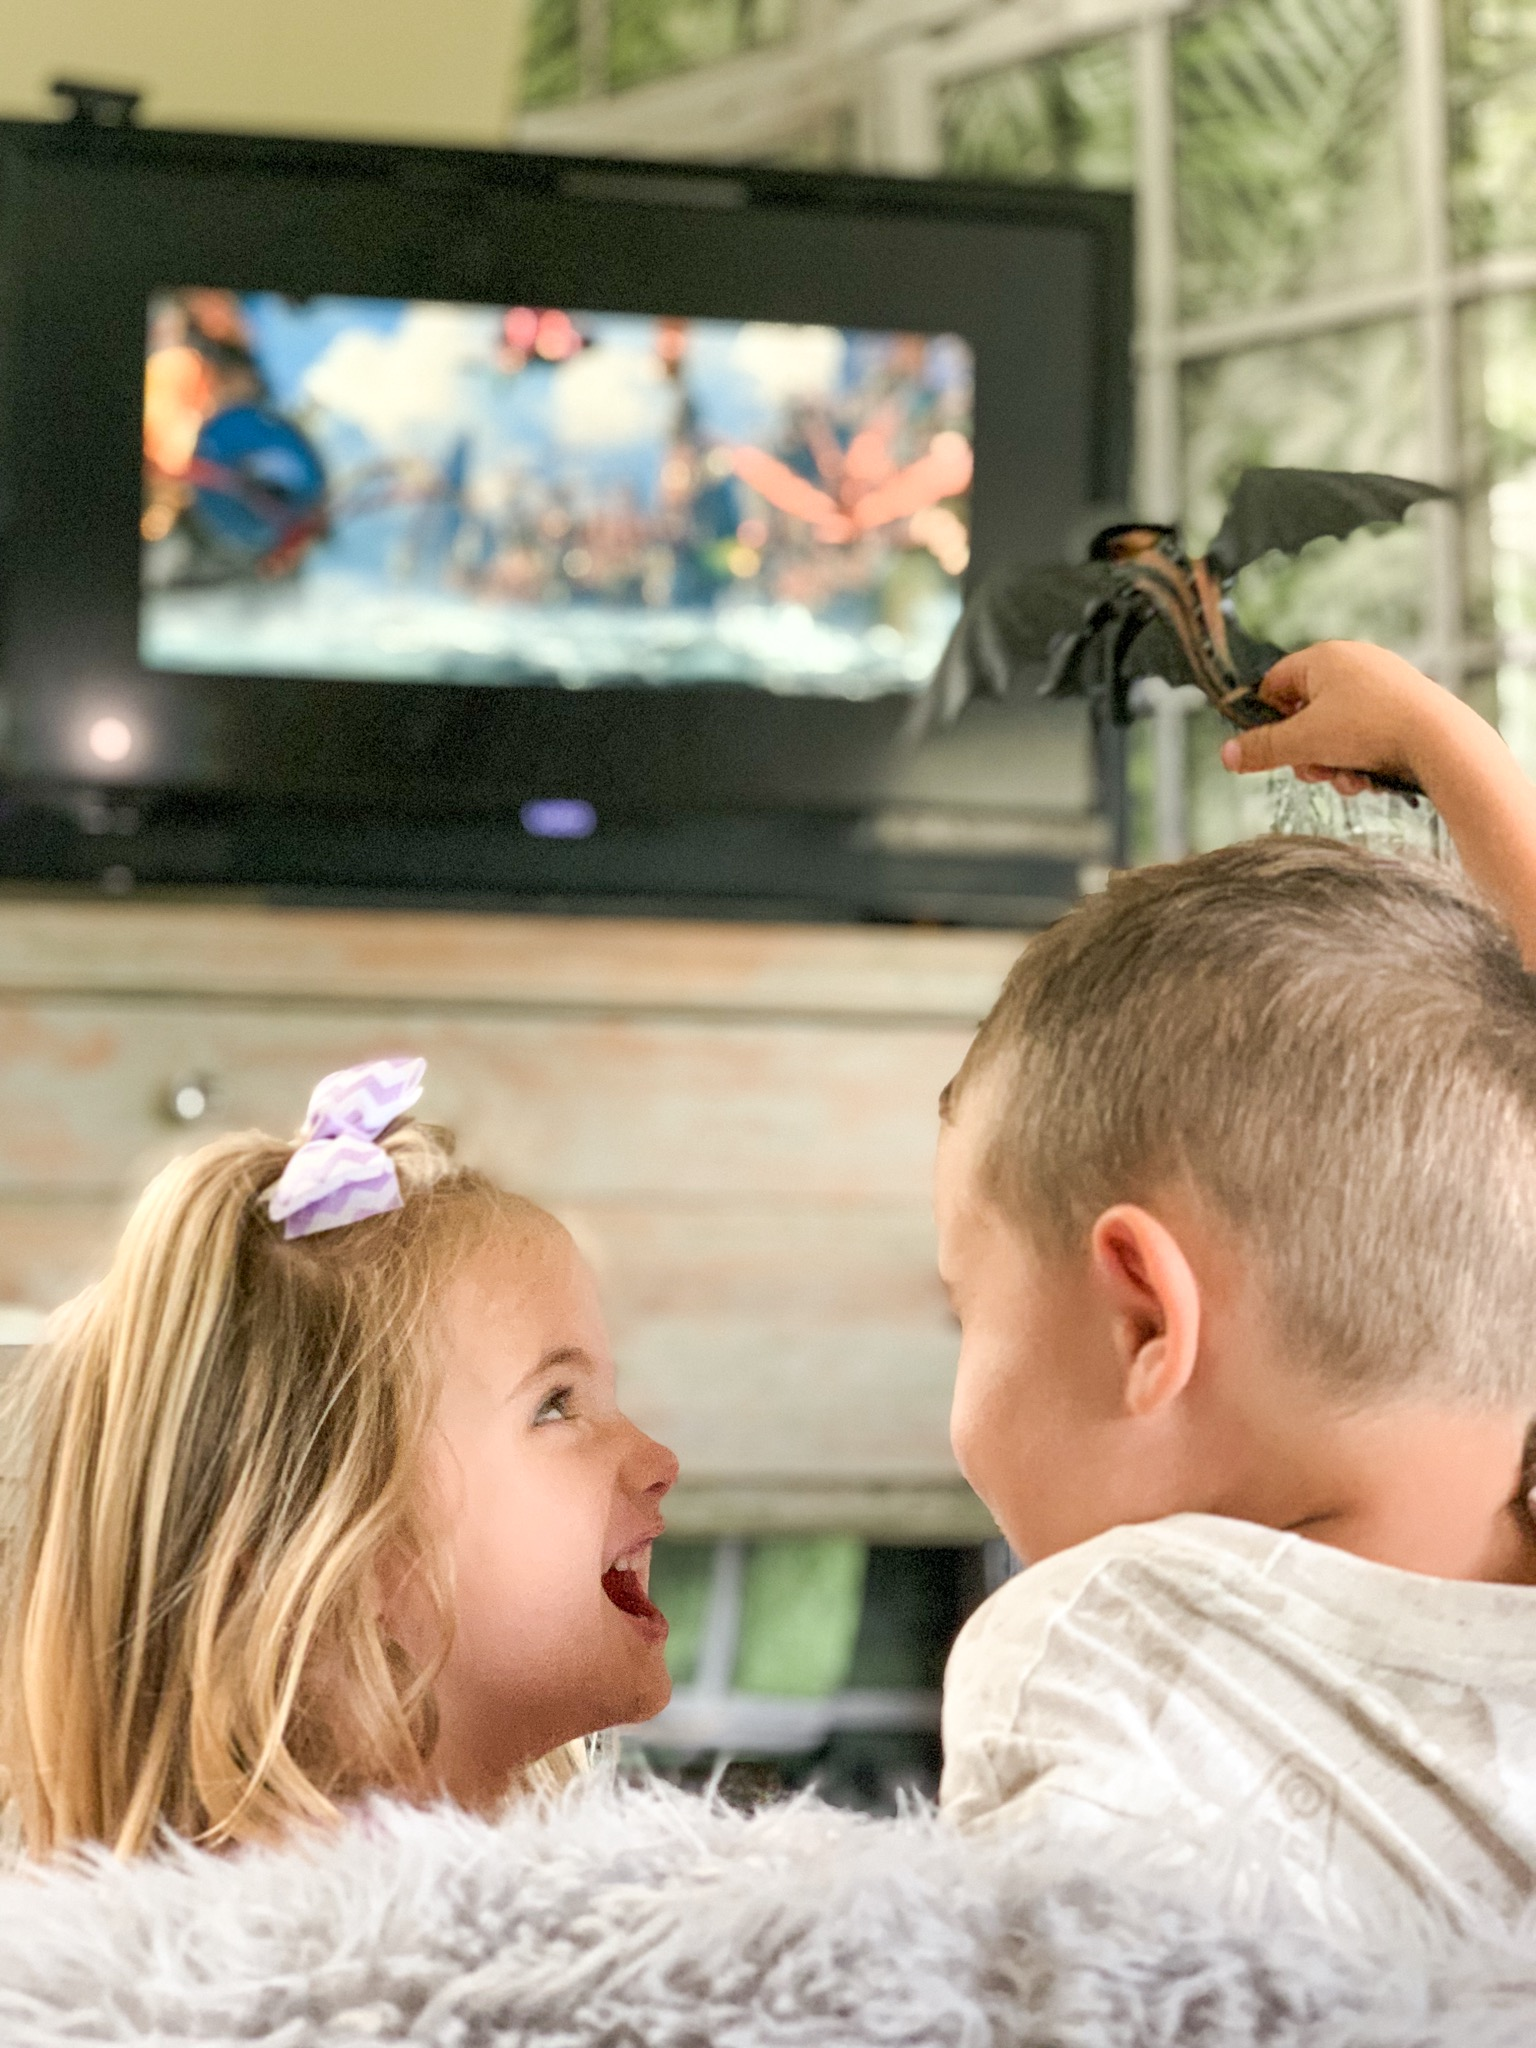 How To Train Your Dragon 3 Walmart Exclusive DVD Gift Set I Hill